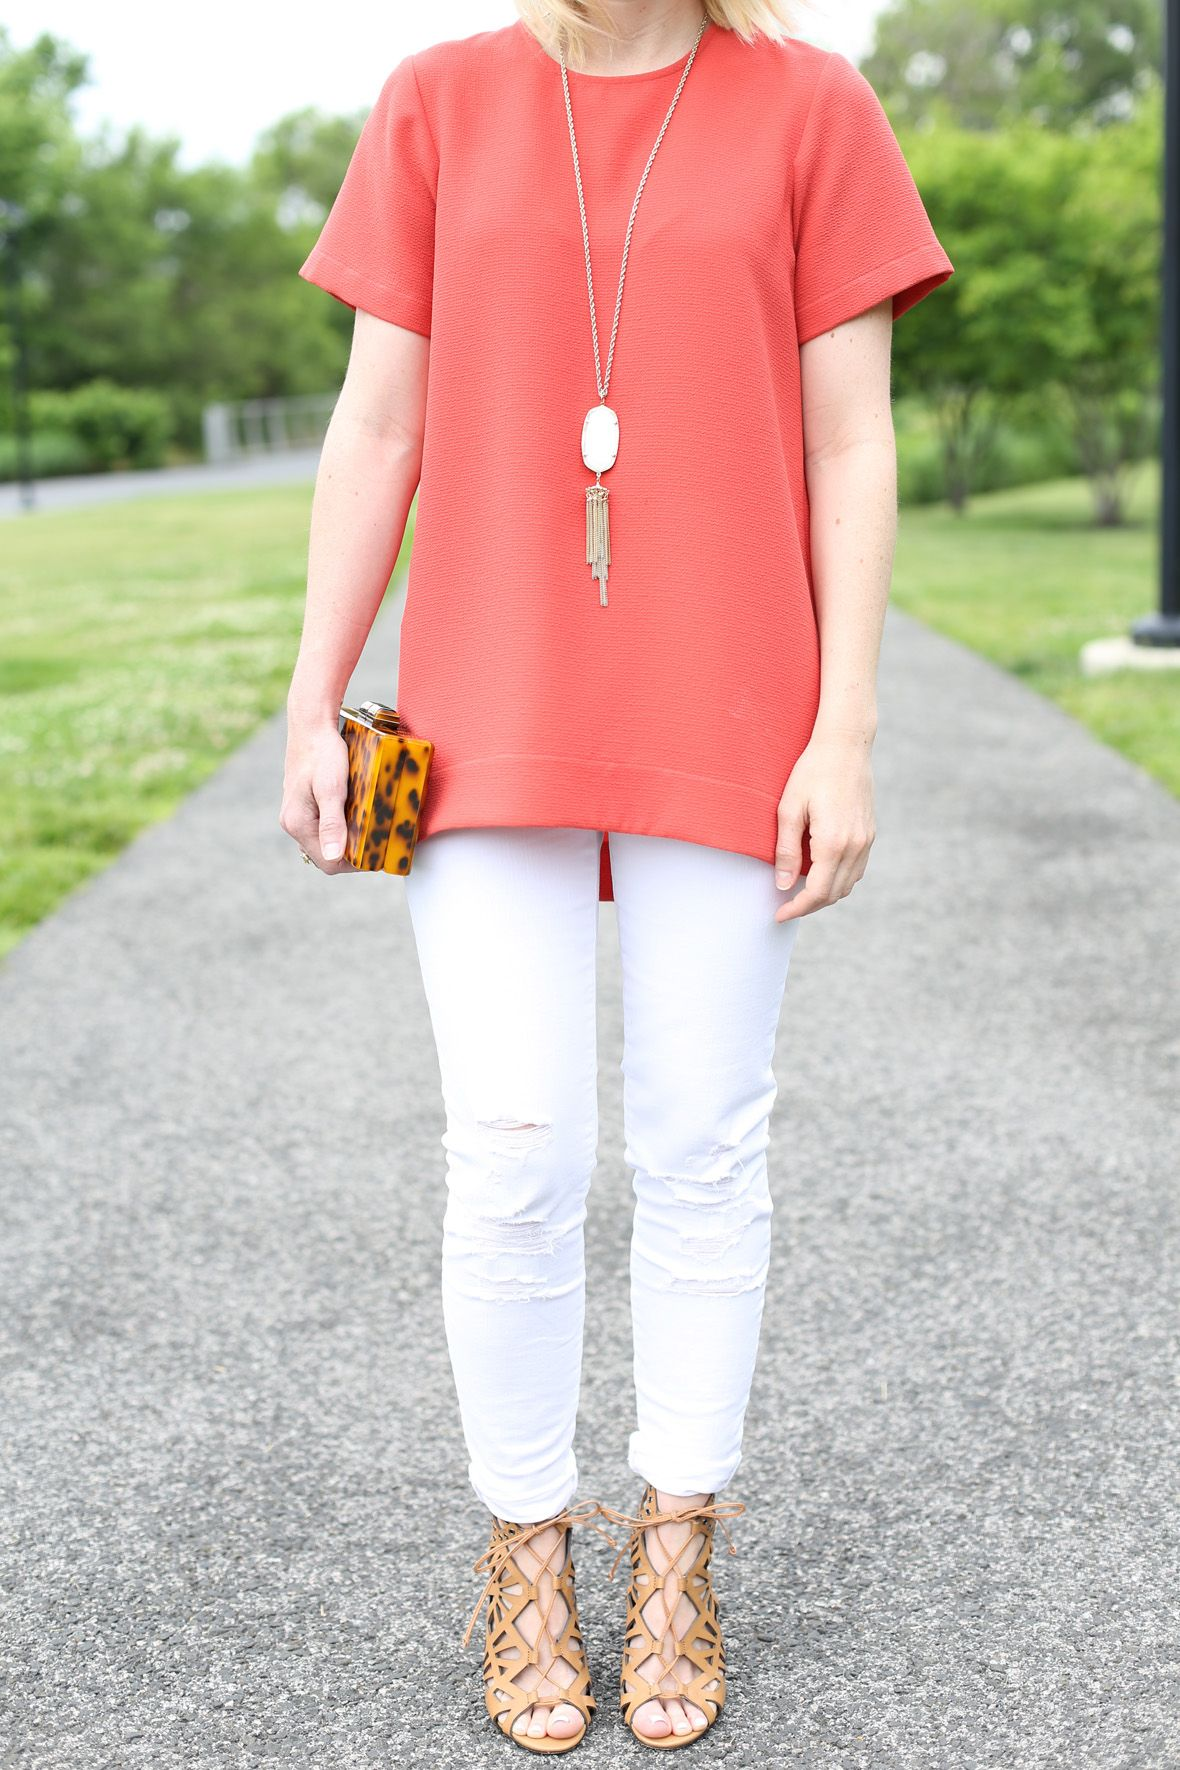 White jeans for spring via poorlilitgirl poor little it girl